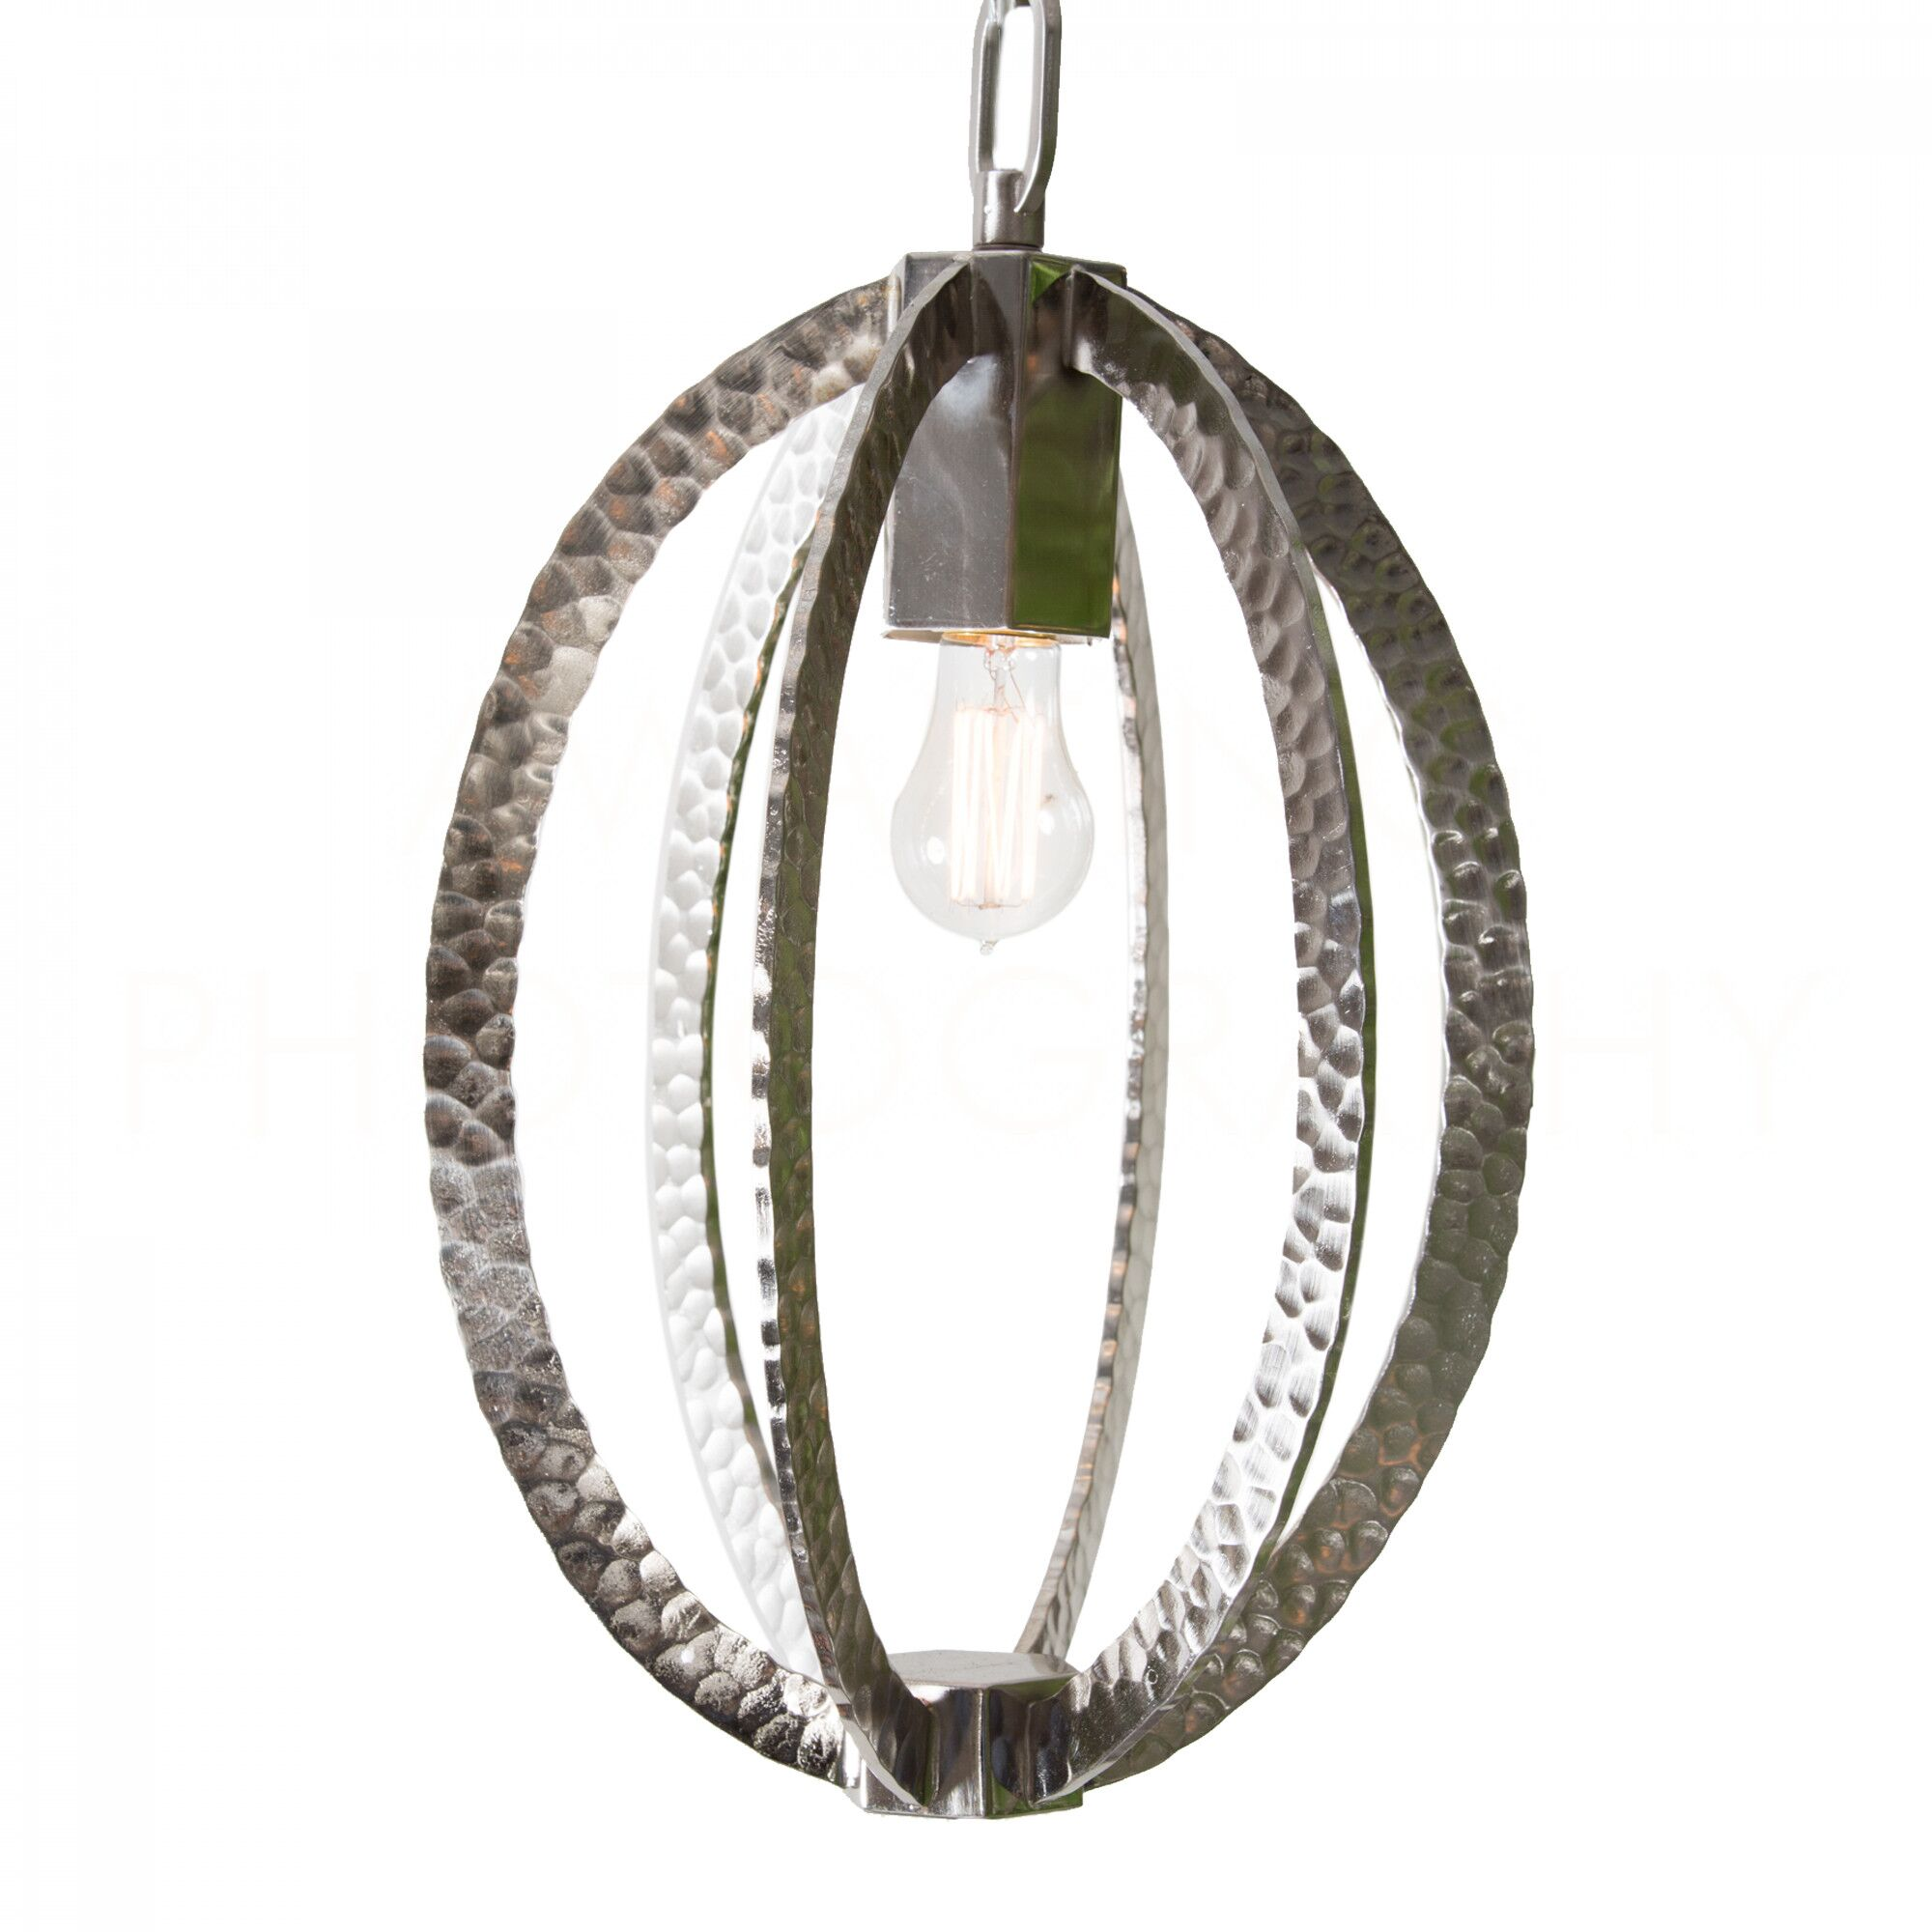 Chan Geo Hammered Oval Mini Pendant Finish: Nickle